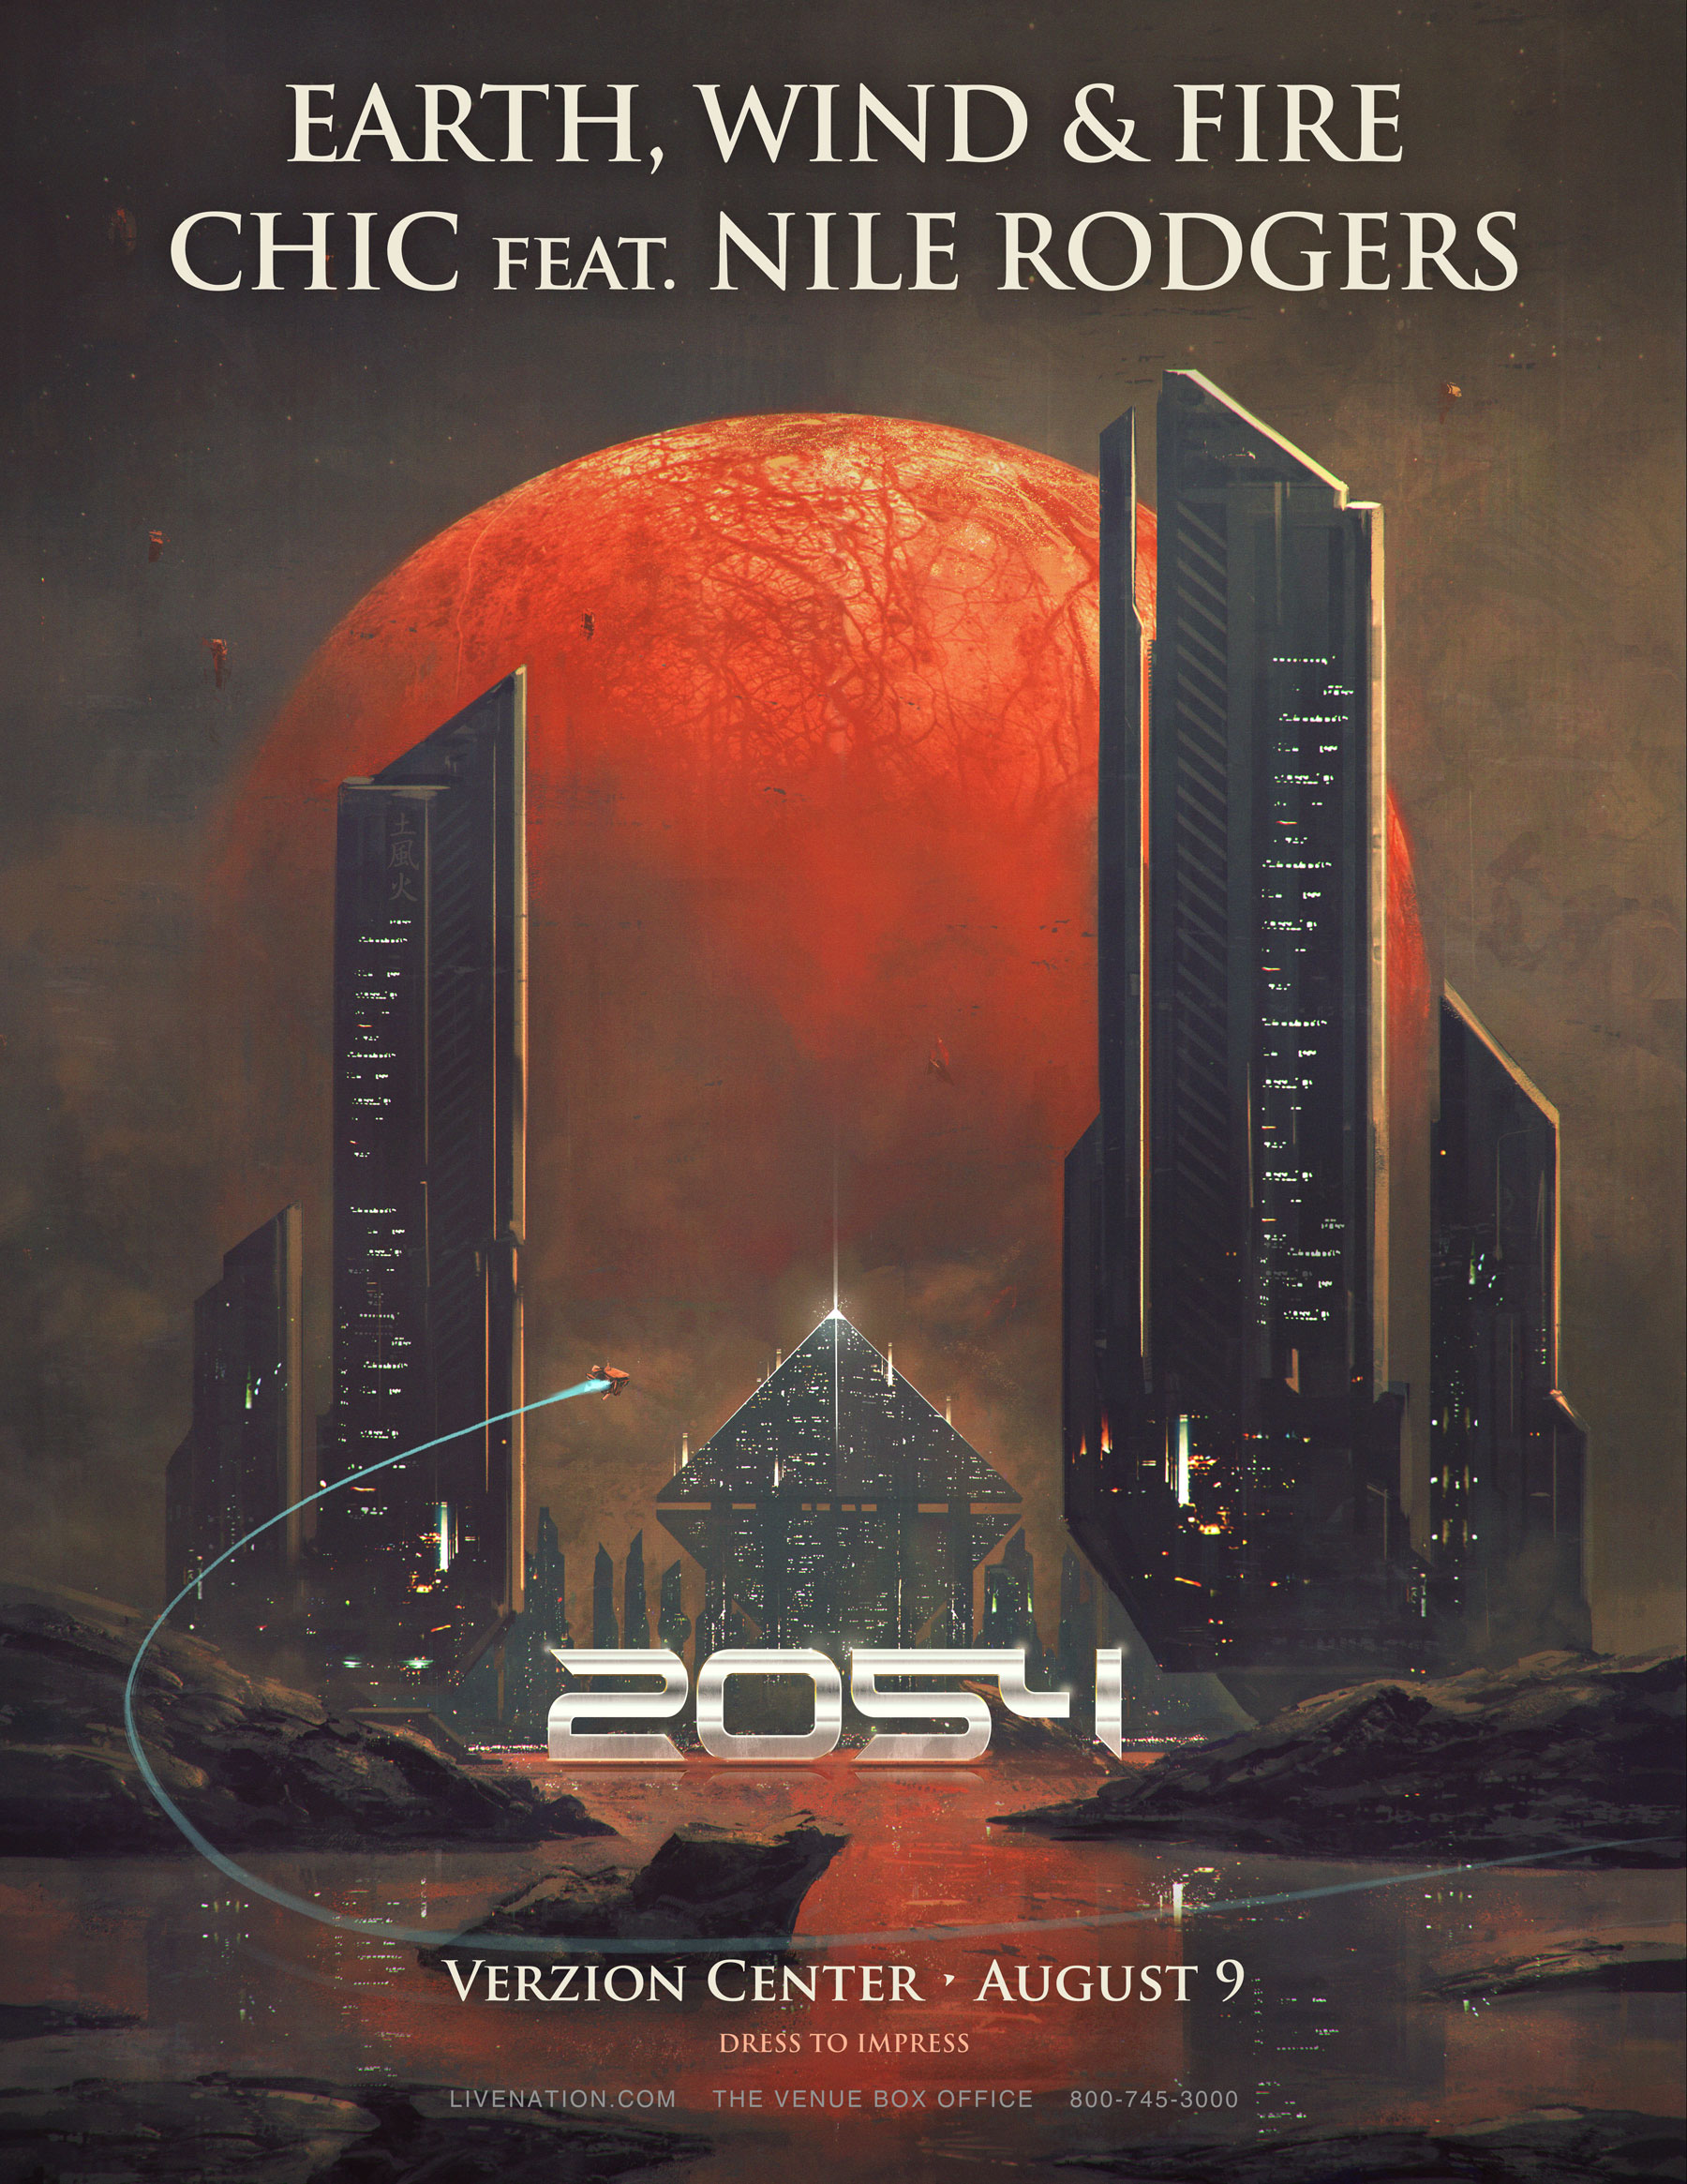 Earth, Wind & Fire and CHIC featuring Nile Rodgers